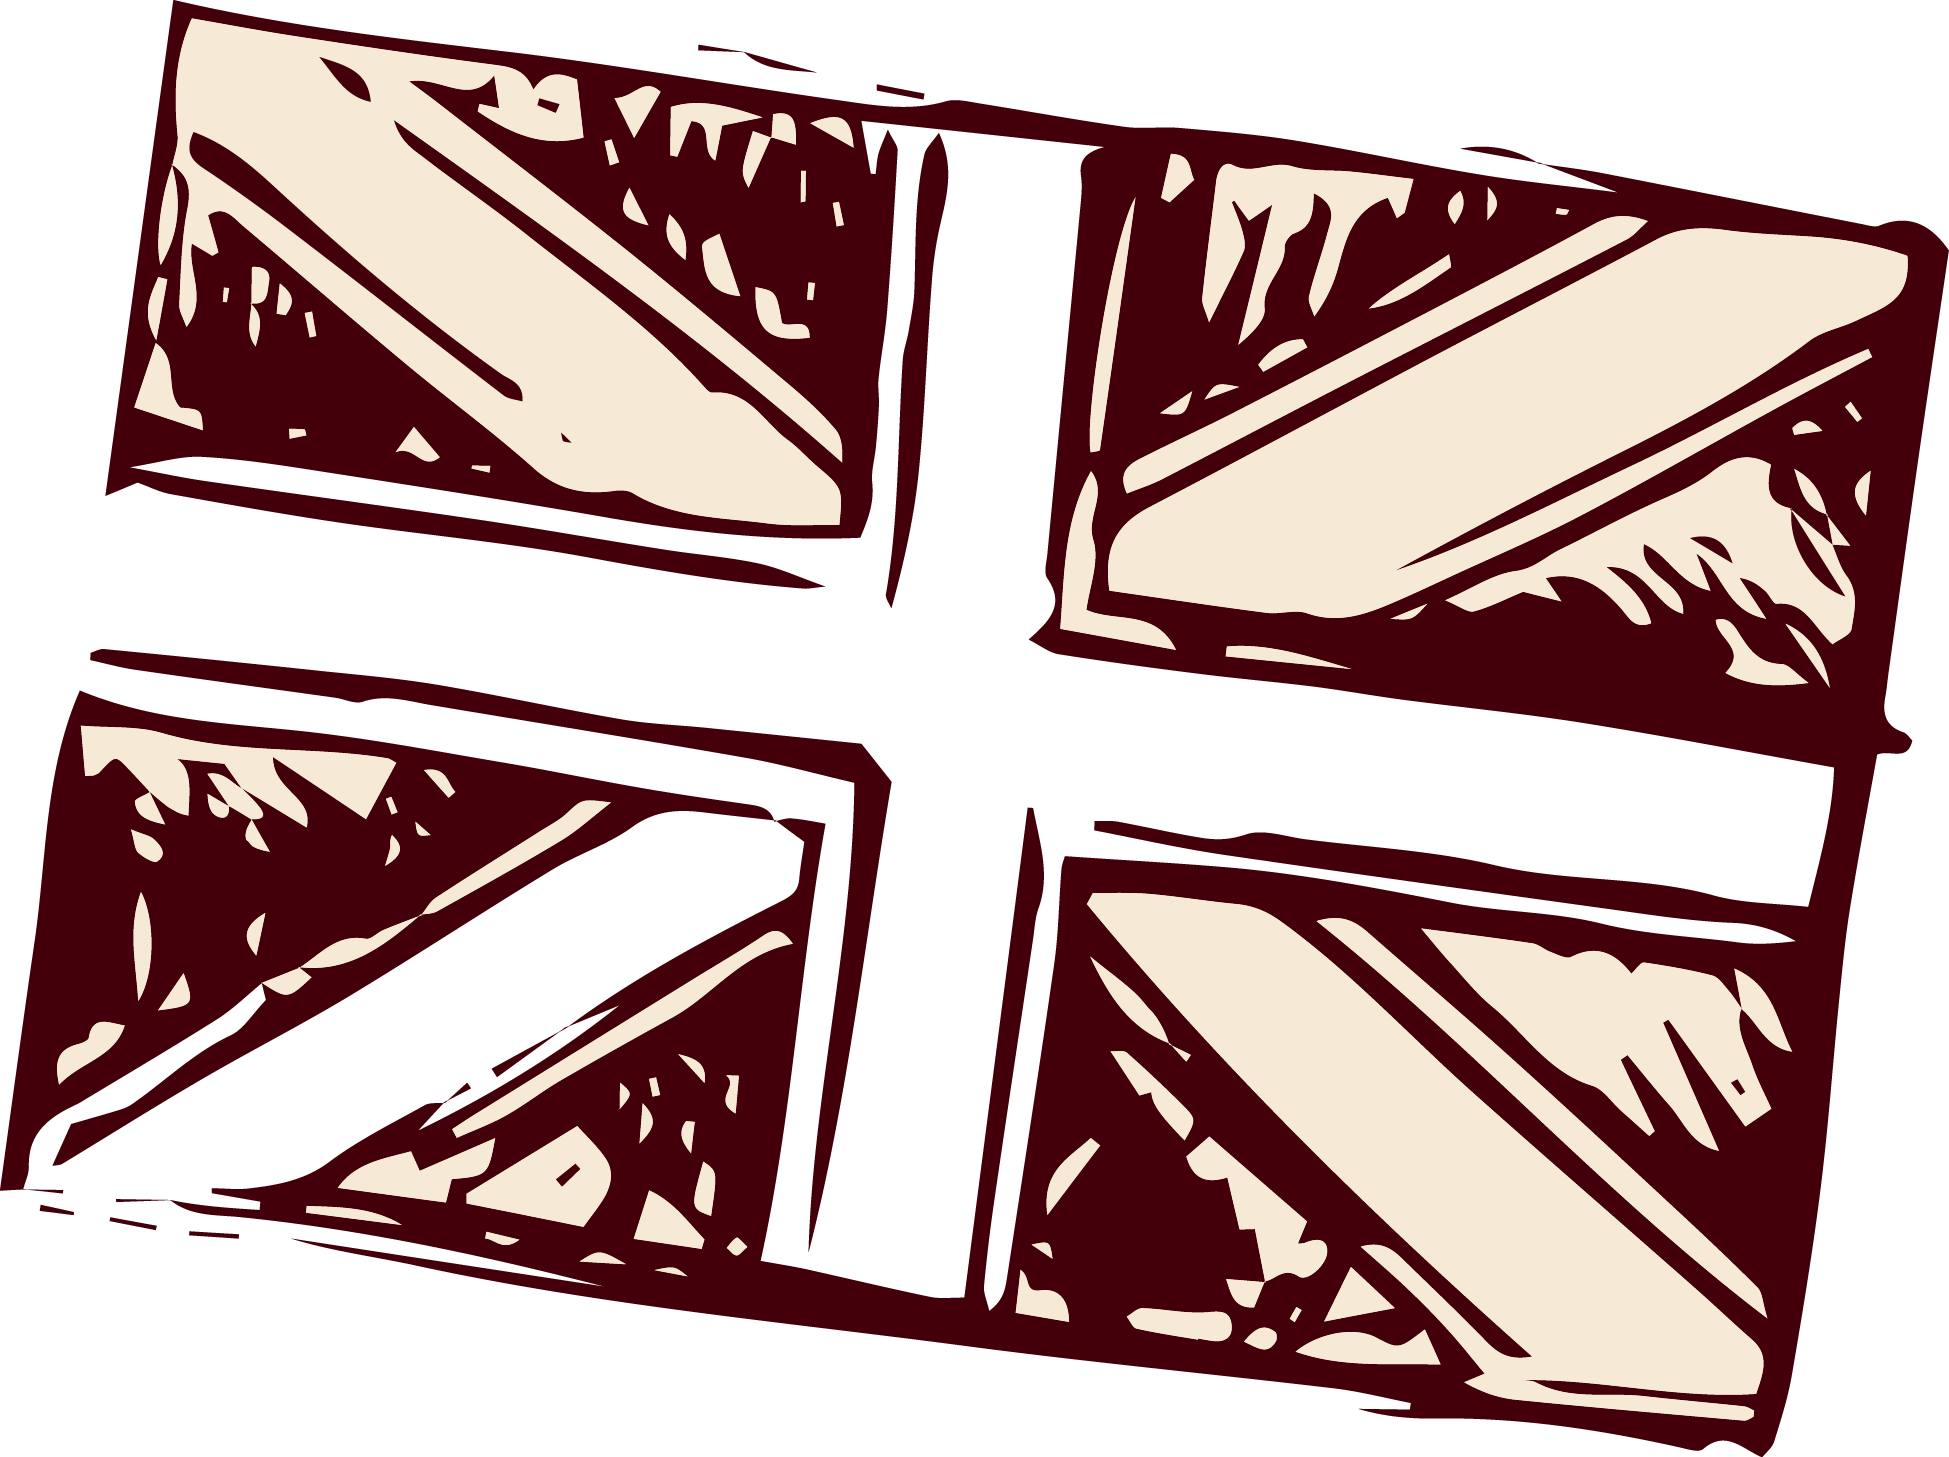 London clipart thing british. Flag of the united